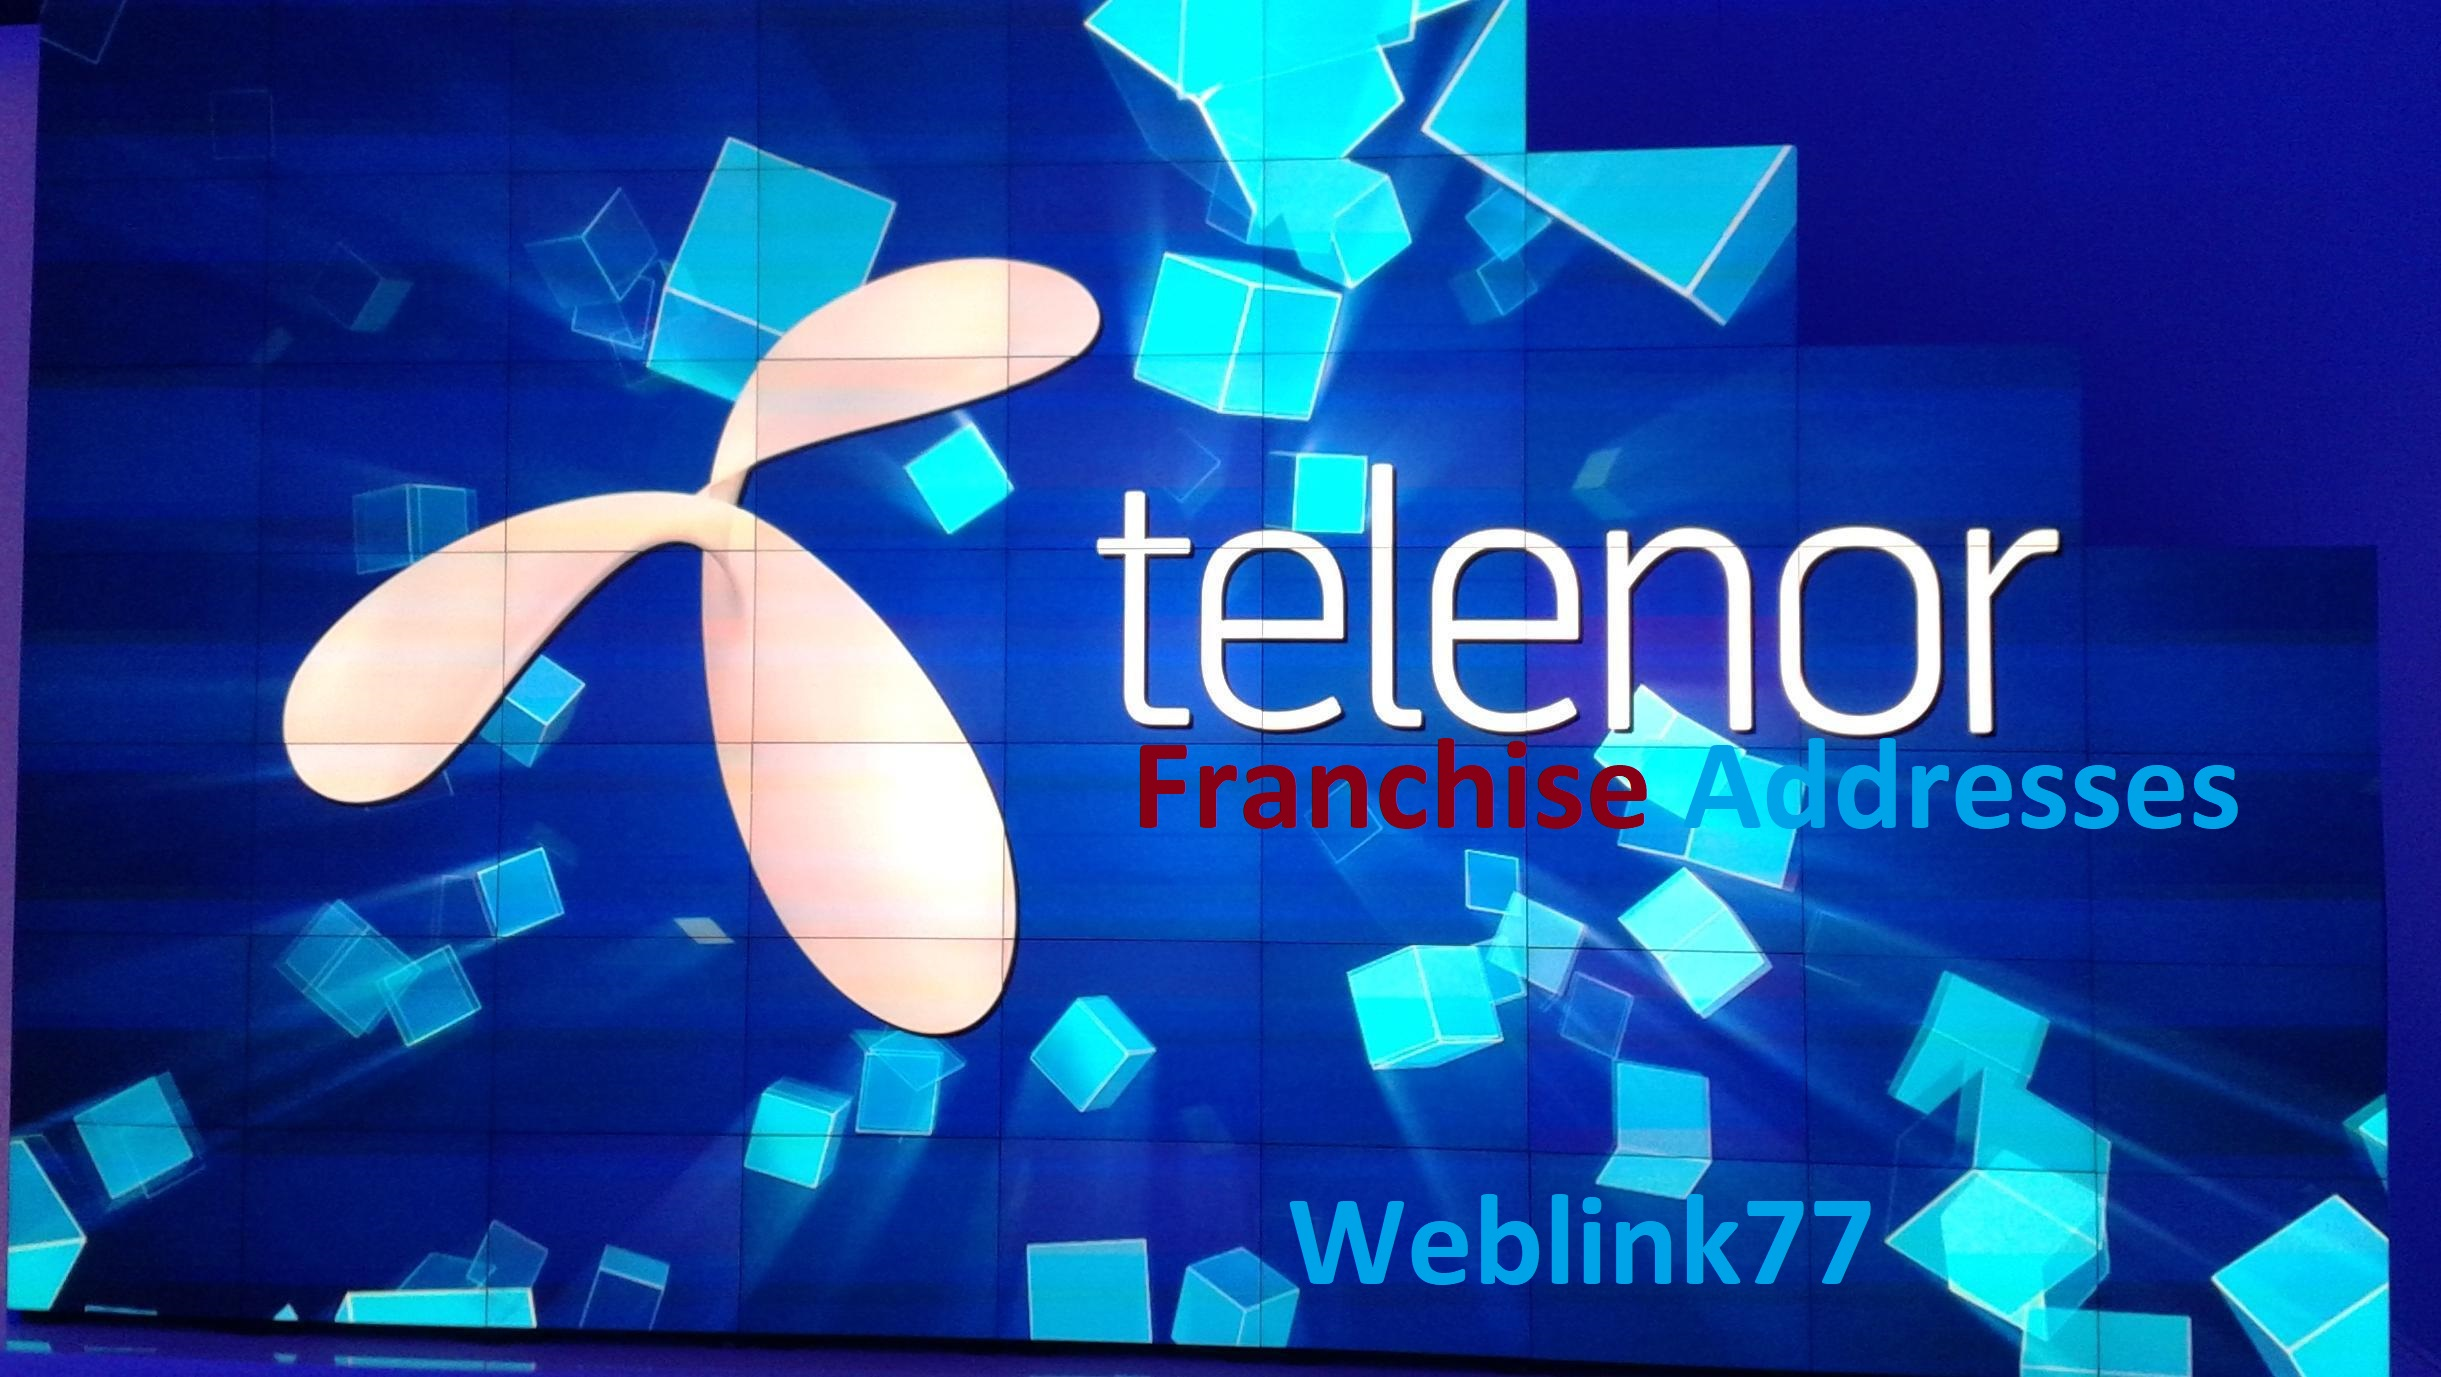 Telenor Franchise Addresses Pakistan